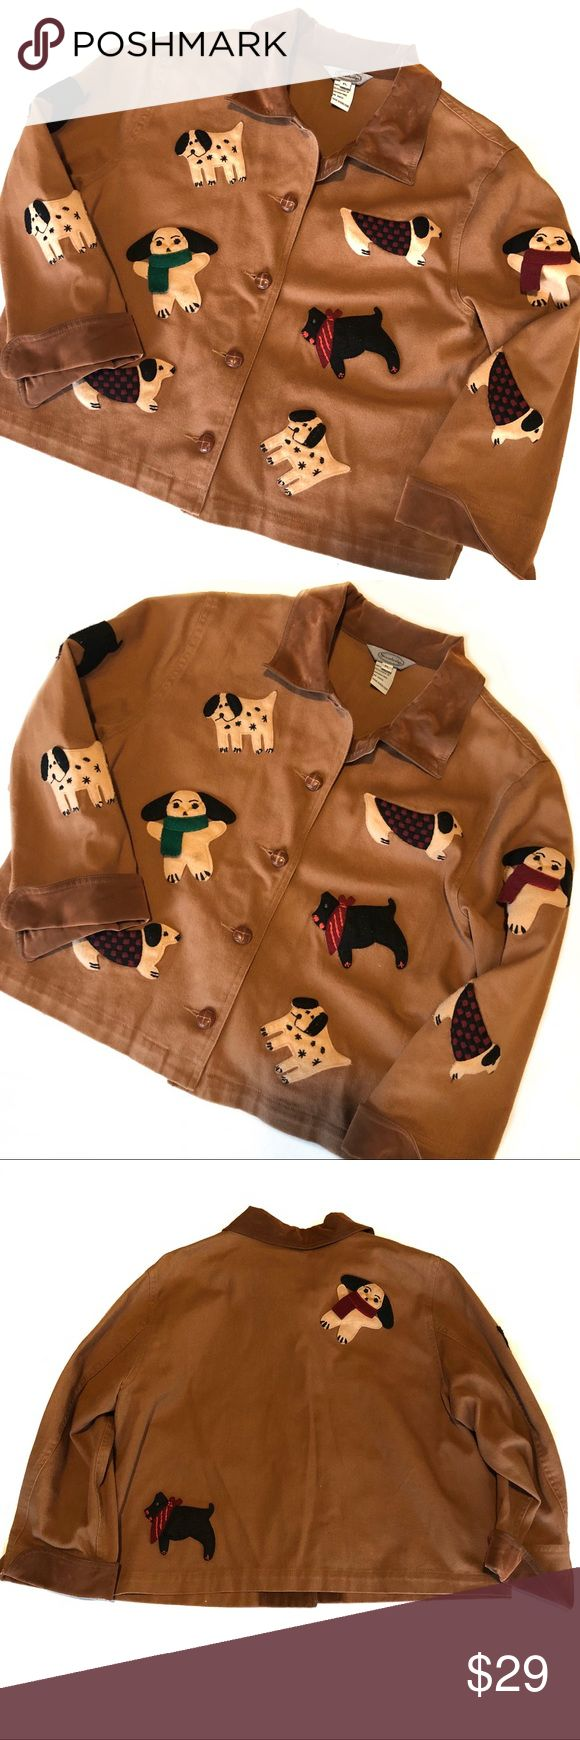 Stonebridge lightweight dog patch button up jacket Lightweight jacket, 3/4 sleeves. Light brown with cute felt puppy doggie patches. Preloved, does show some minor wear and top button chipped. All detailed in photos. Size PL (petite??), please use measurements to ensure fit. stonebridge Jackets & Coats